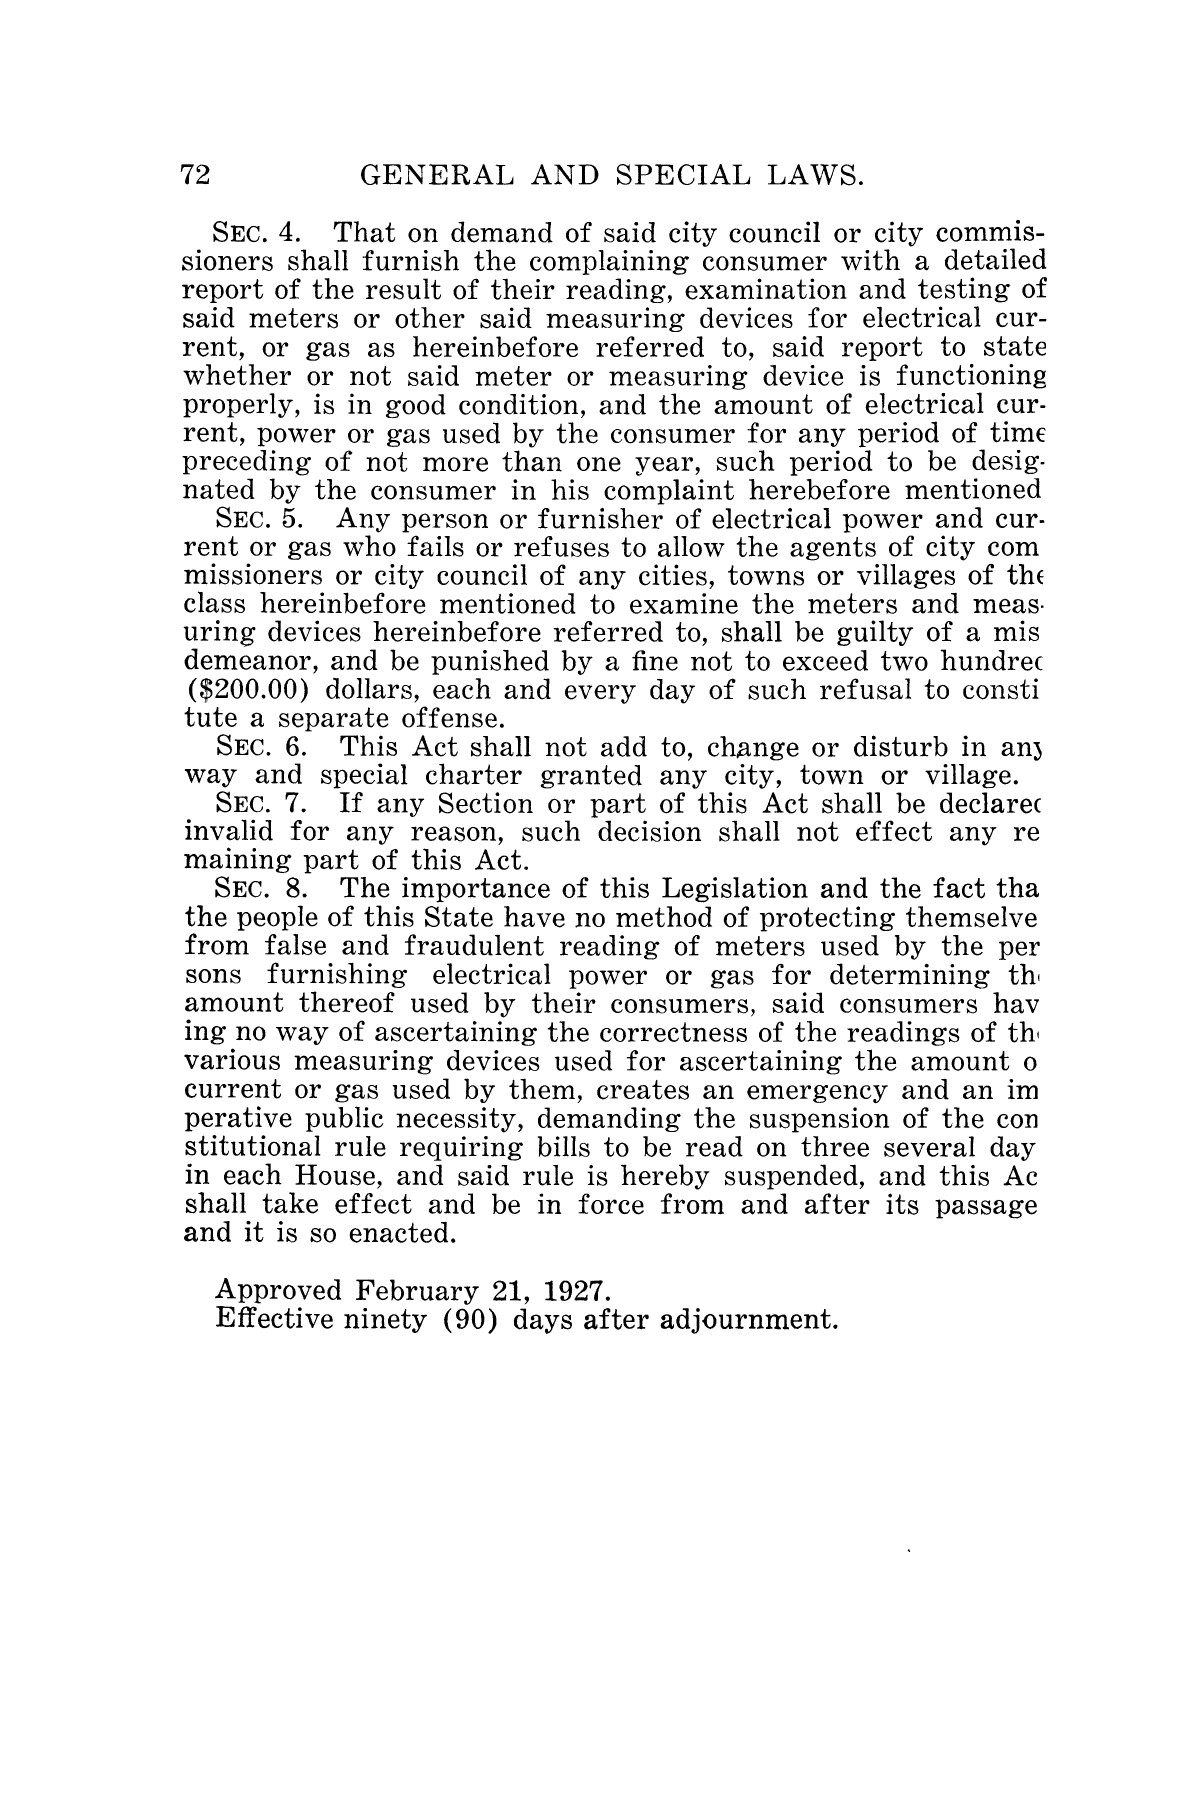 The Laws of Texas, 1927 [Volume 25]                                                                                                      [Sequence #]: 88 of 1111